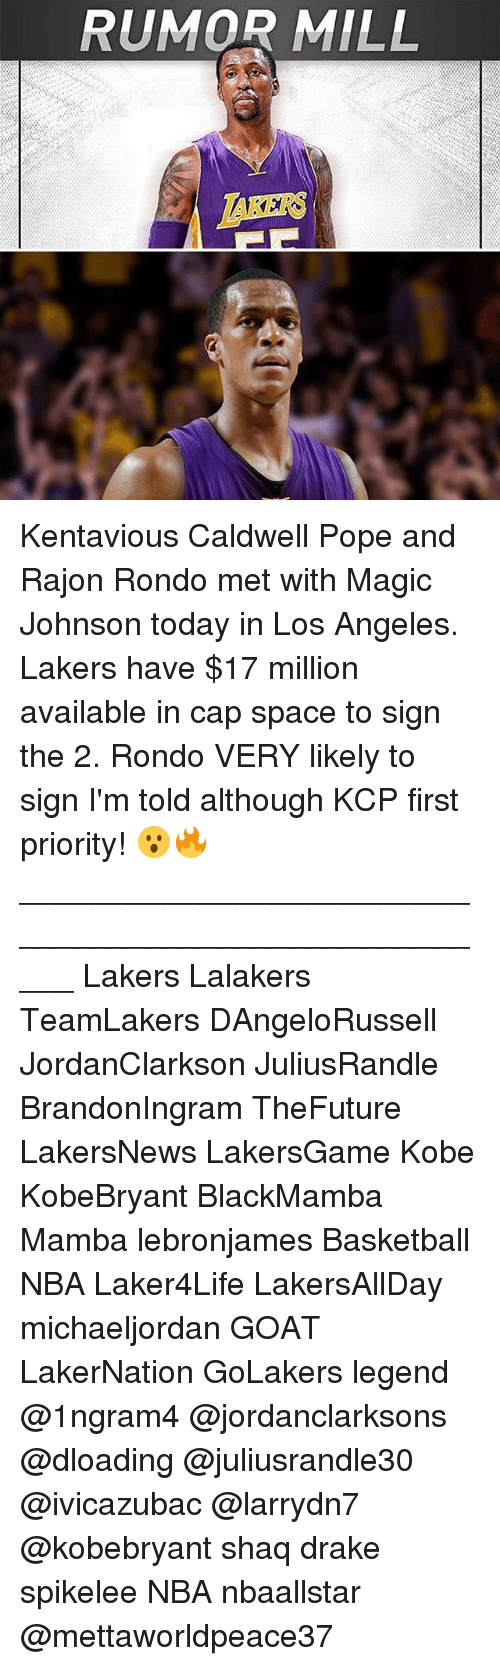 poped: RUMOR MILL  TAKERS Kentavious Caldwell Pope and Rajon Rondo met with Magic Johnson today in Los Angeles. Lakers have $17 million available in cap space to sign the 2. Rondo VERY likely to sign I'm told although KCP first priority! 😮🔥 _____________________________________________________ Lakers Lalakers TeamLakers DAngeloRussell JordanClarkson JuliusRandle BrandonIngram TheFuture LakersNews LakersGame Kobe KobeBryant BlackMamba Mamba lebronjames Basketball NBA Laker4Life LakersAllDay michaeljordan GOAT LakerNation GoLakers legend @1ngram4 @jordanclarksons @dloading @juliusrandle30 @ivicazubac @larrydn7 @kobebryant shaq drake spikelee NBA nbaallstar @mettaworldpeace37